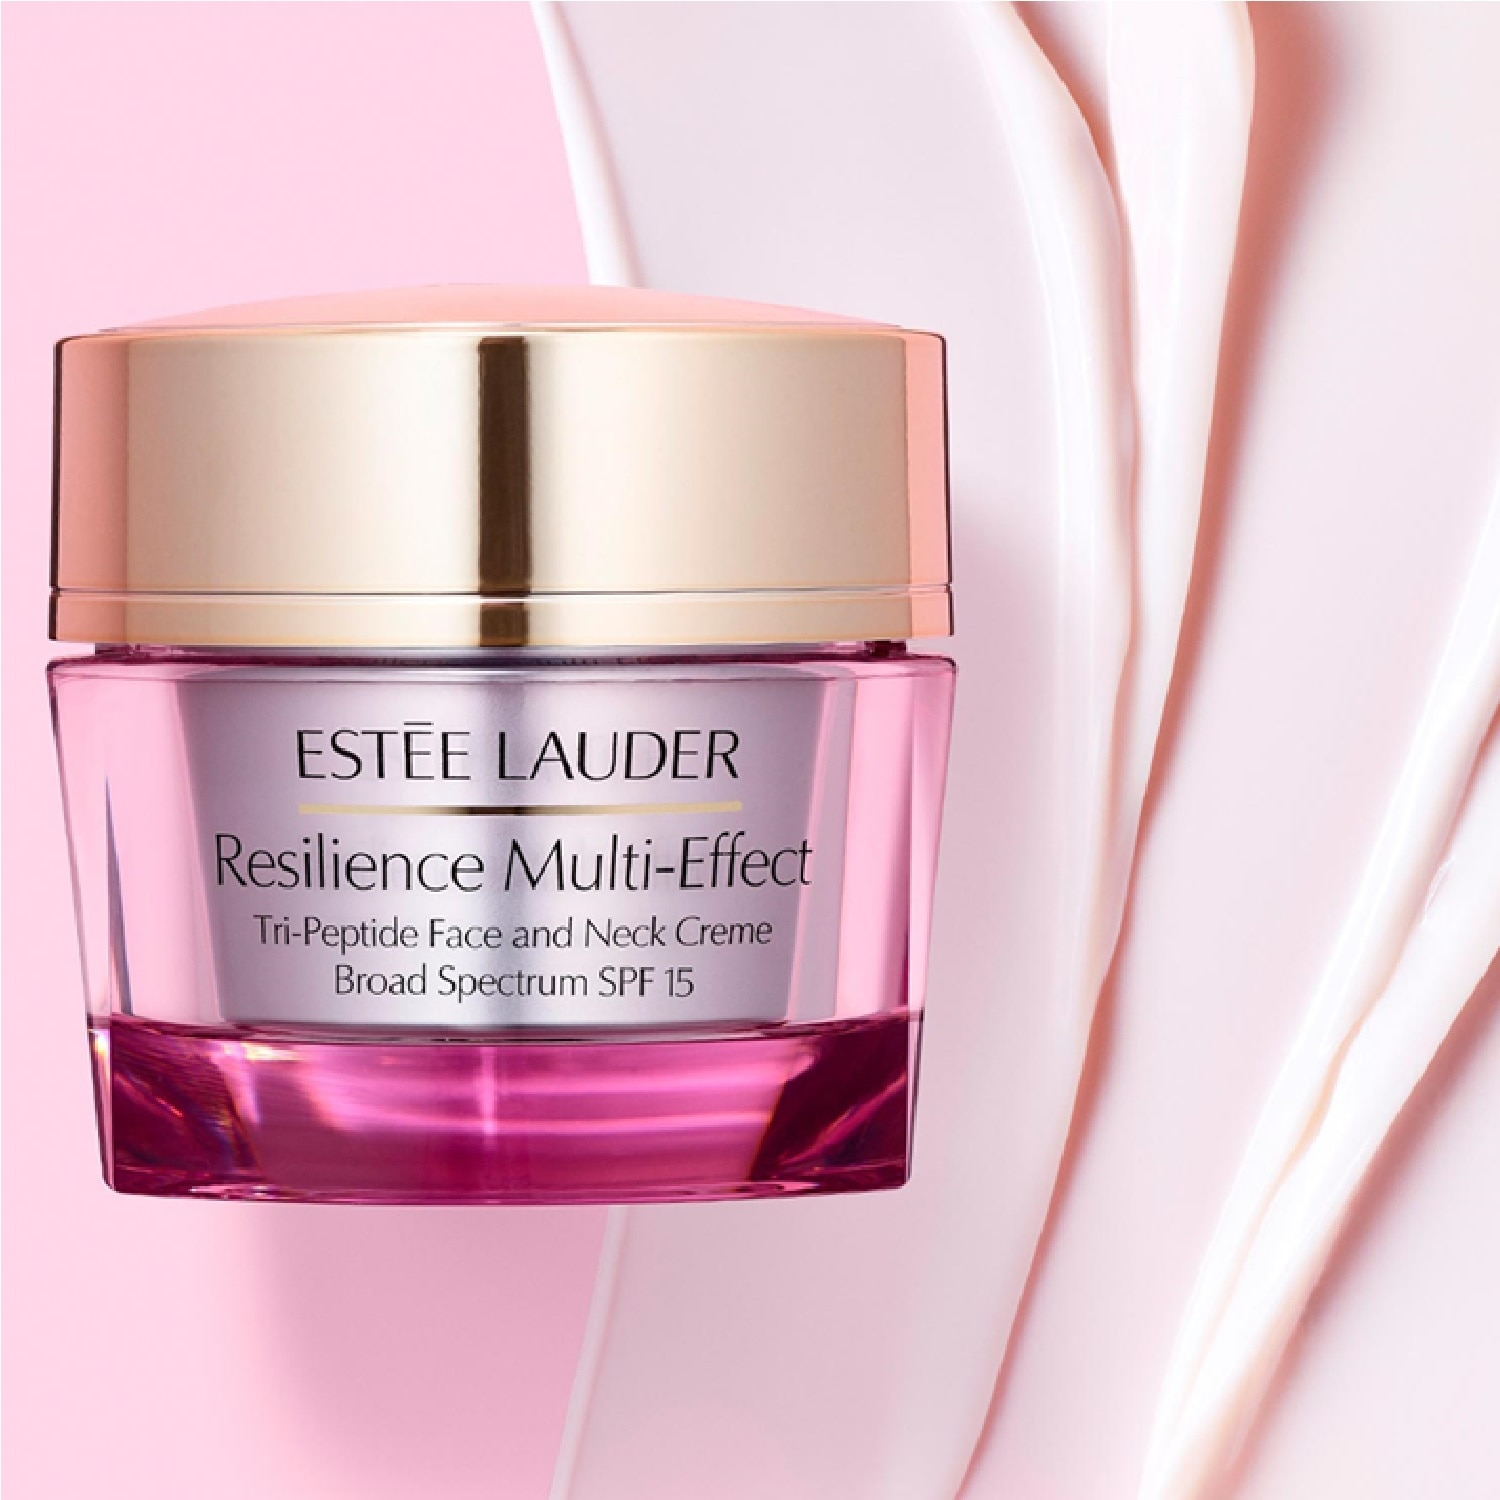 RESILIENCE MULTI-EFFECT TRI-PEPTIDE FACE AND NECK CRÉME